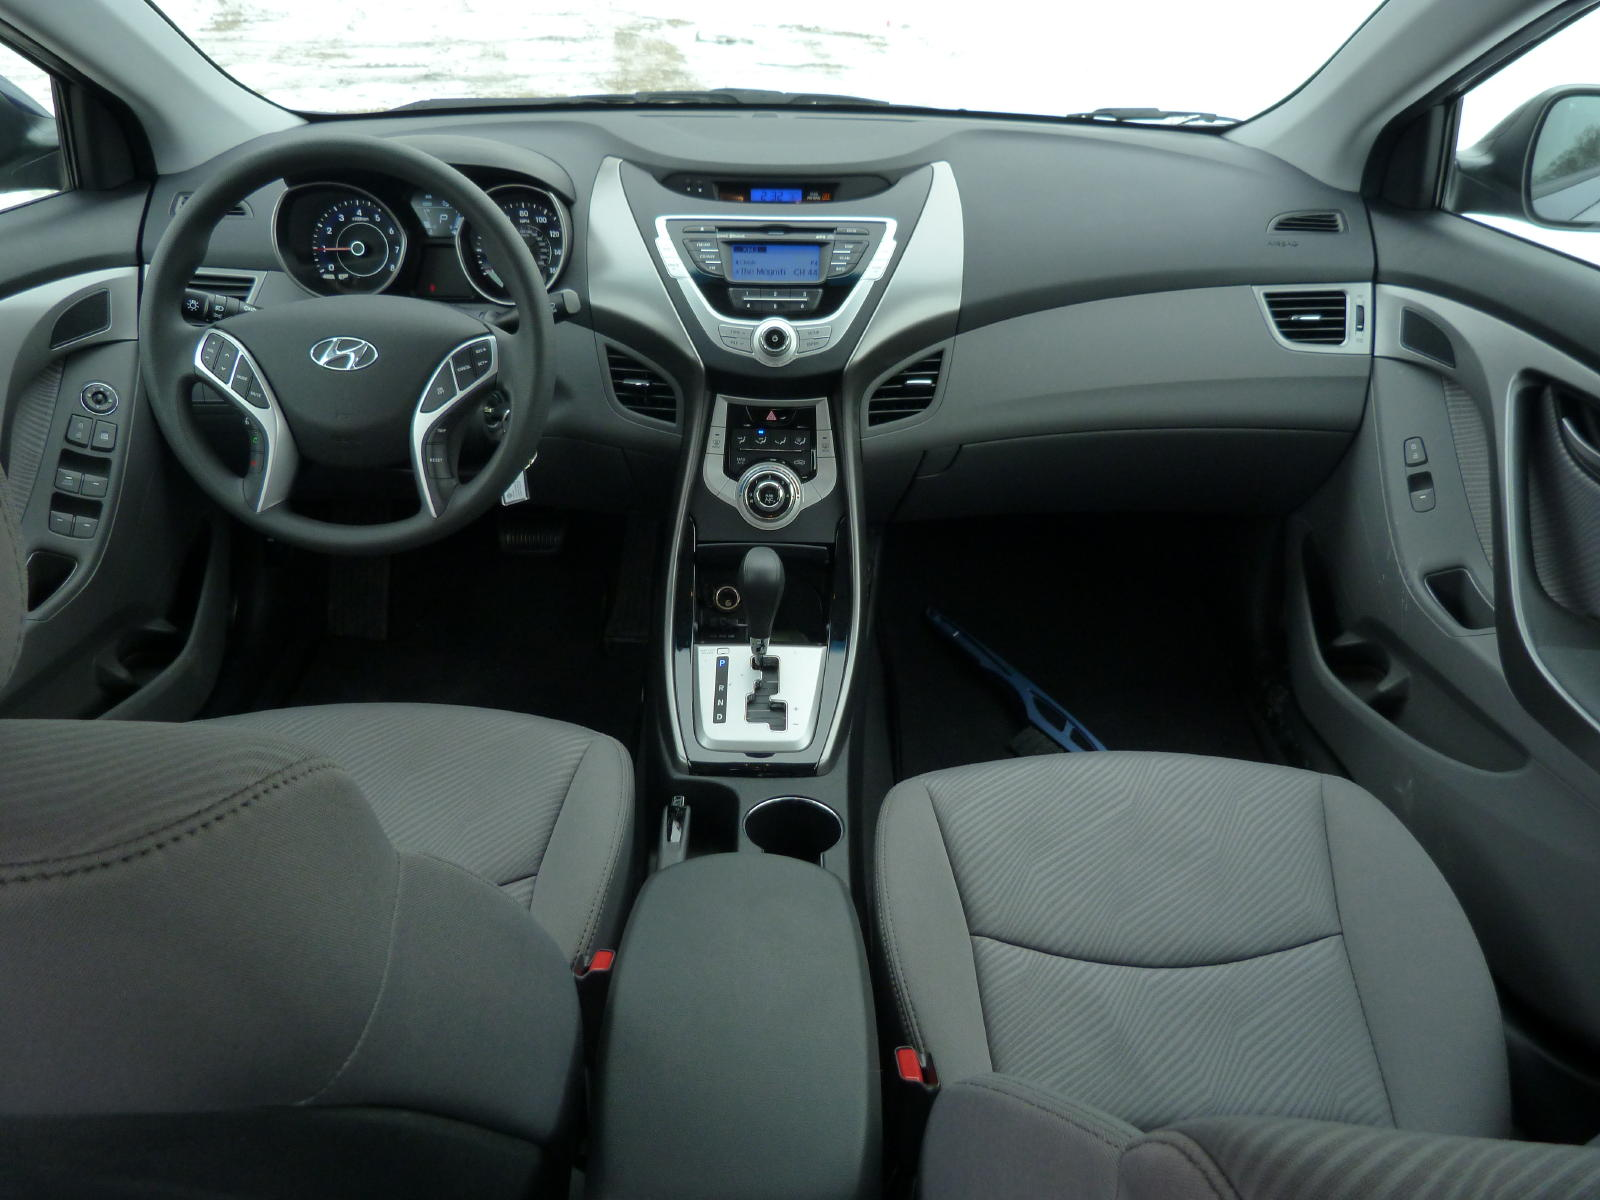 review 2011 hyundai elantra the truth about cars. Black Bedroom Furniture Sets. Home Design Ideas